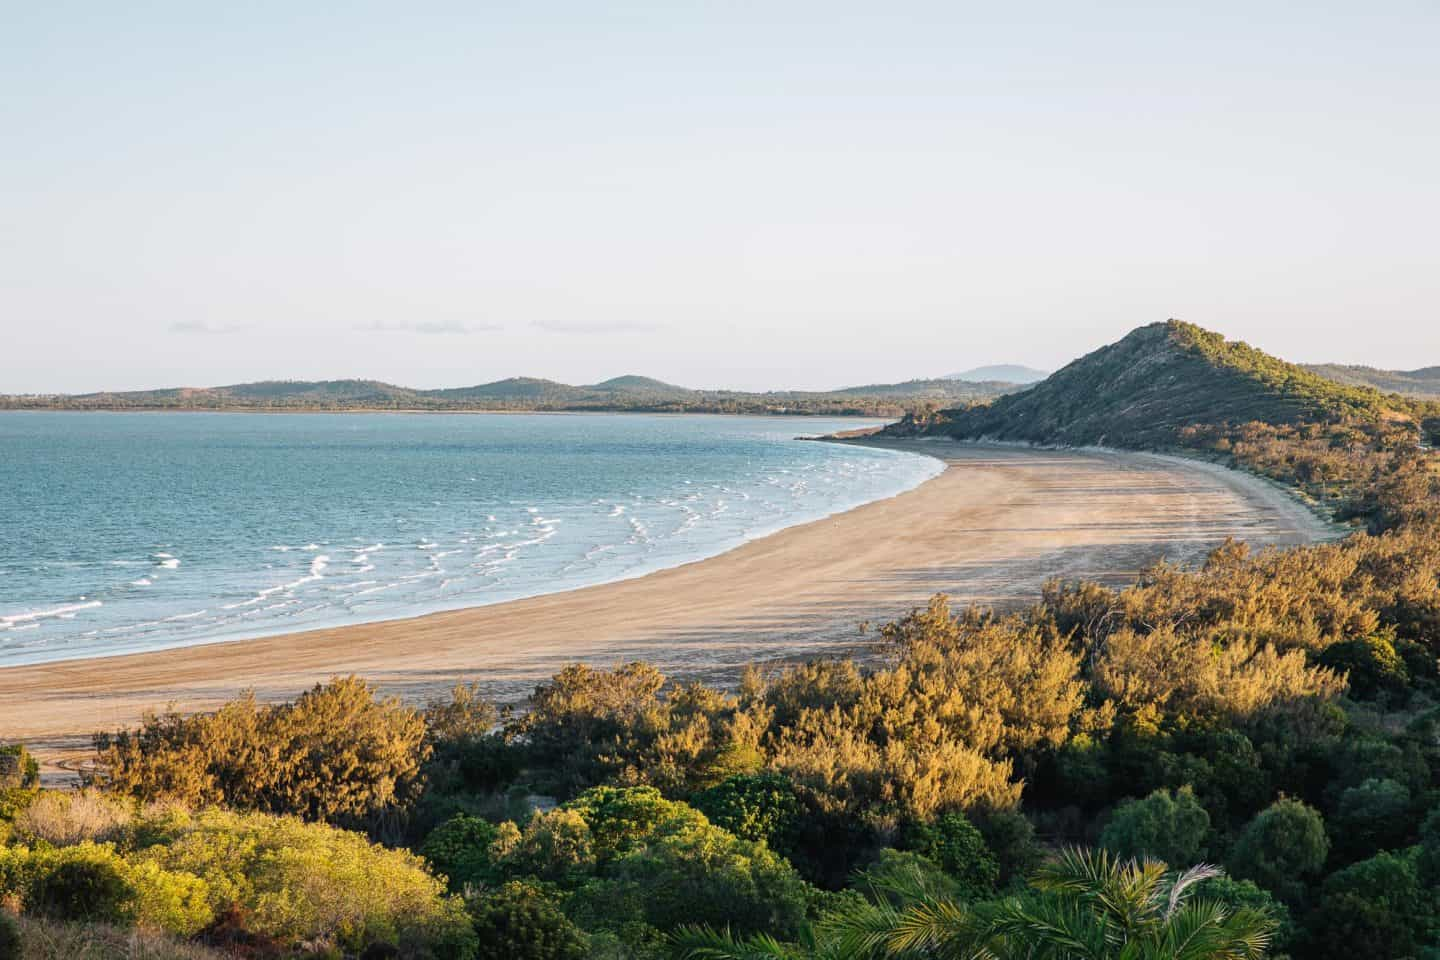 yeppoon beaches, beaches yeppoon, best beaches in yeppoon, beaches in yeppoon, mulambin beach